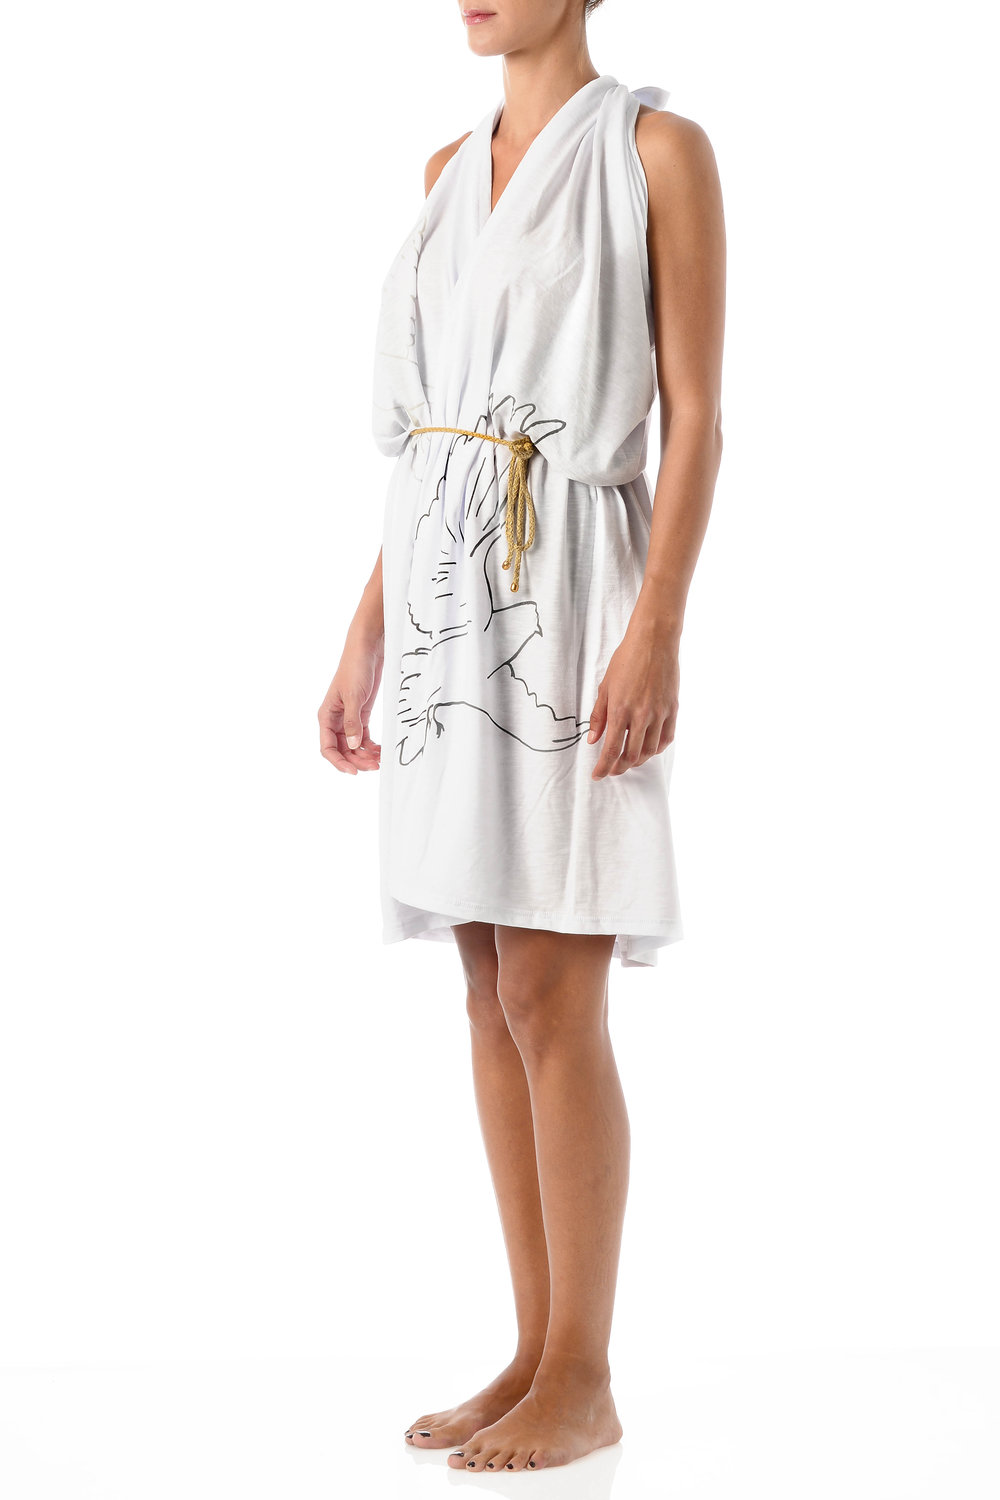 doves-on-white-cotton-wrap-dress-side.jpg